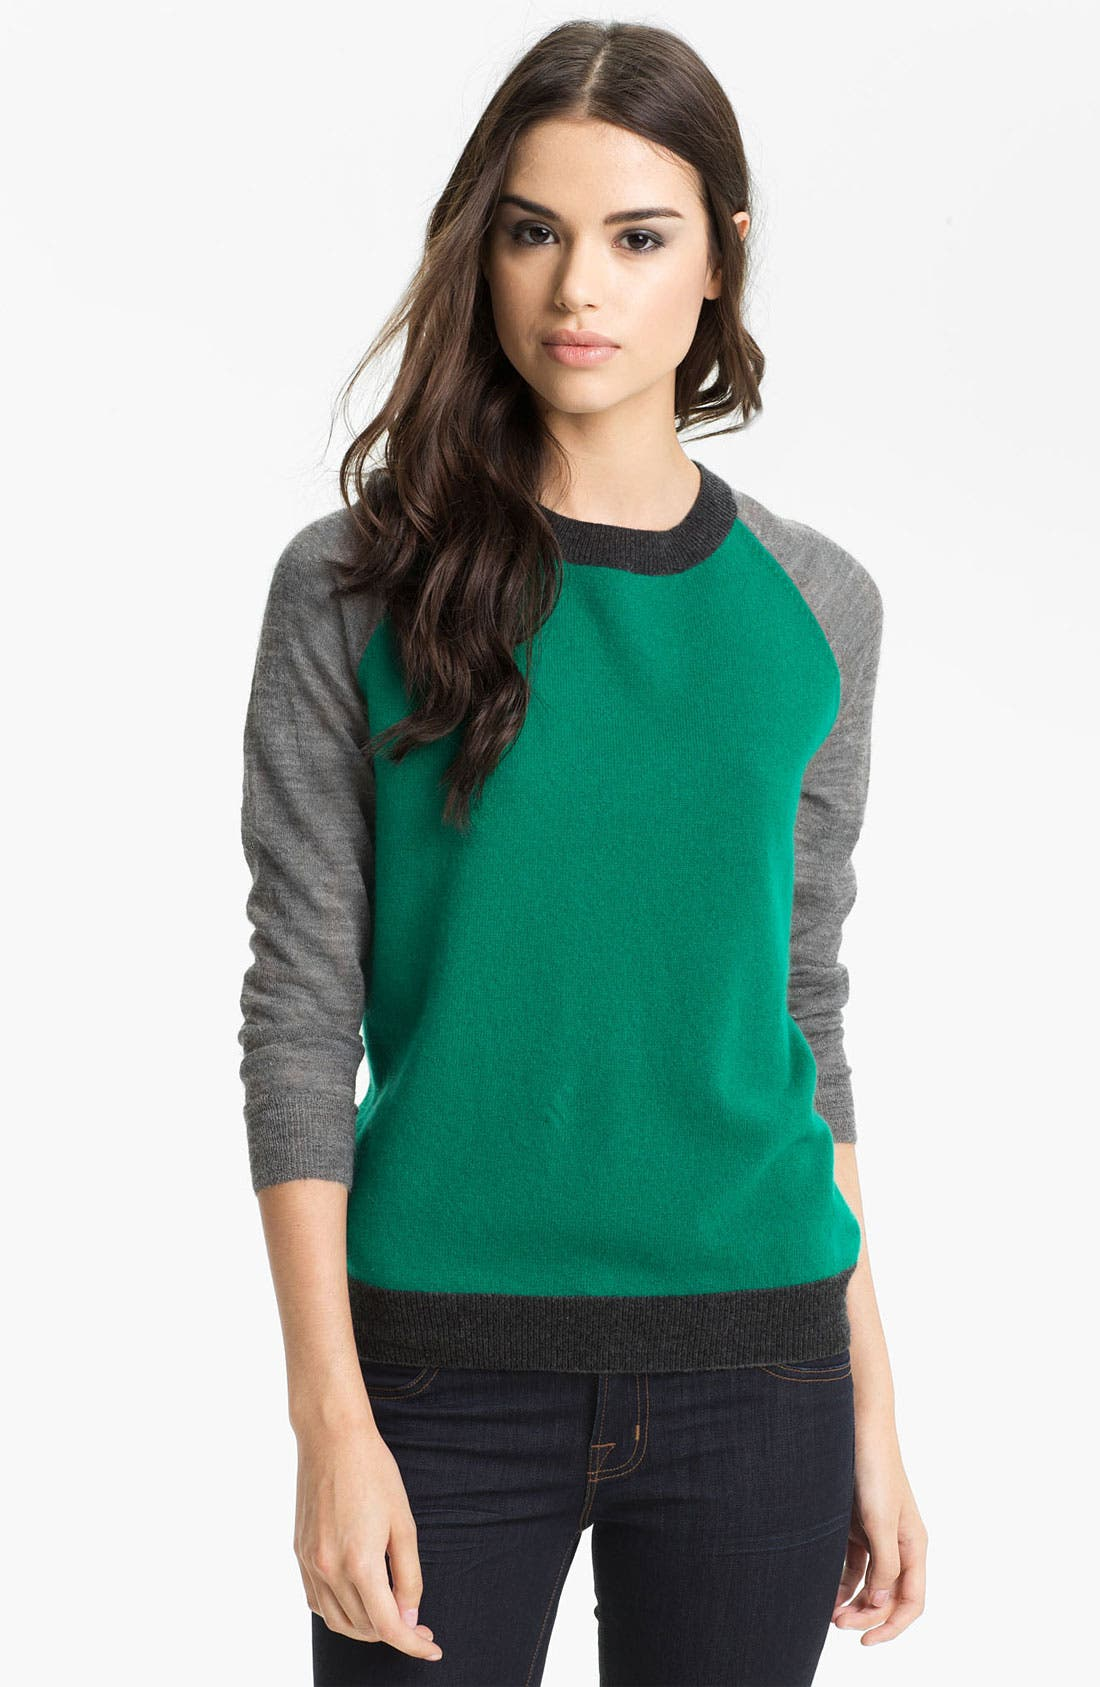 Alternate Image 1 Selected - Joie 'Wandie' Colorblock Cashmere Sweater